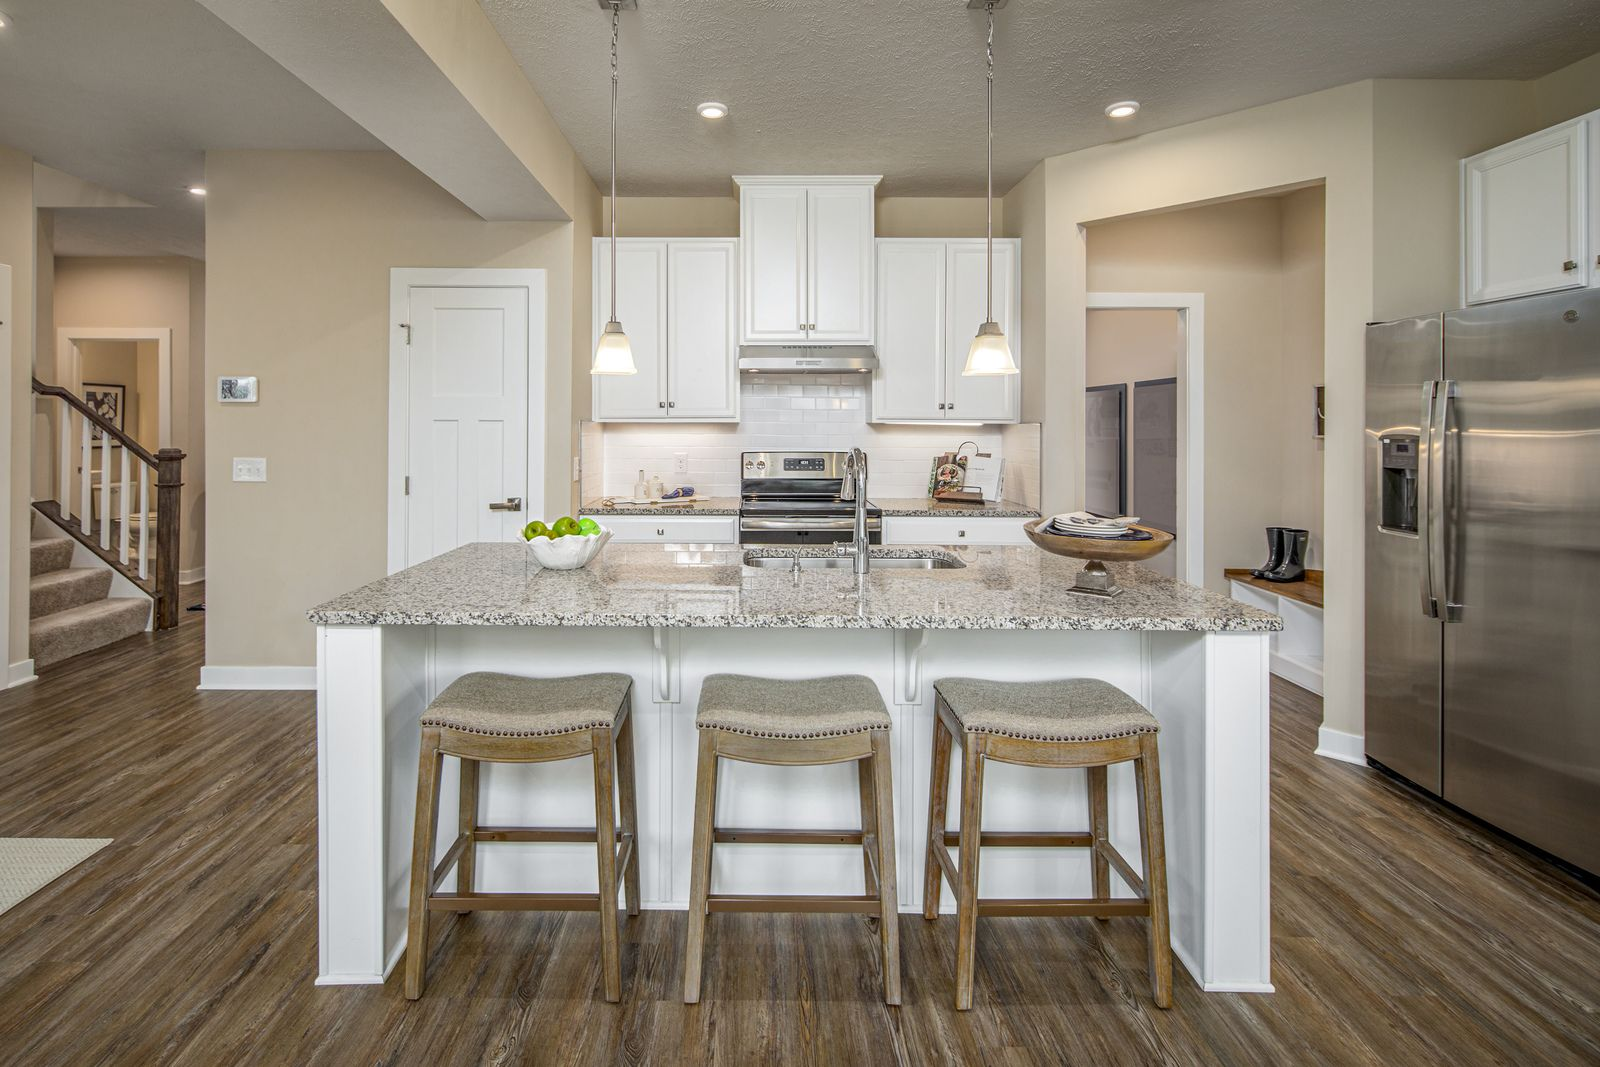 Kitchen featured in the Allegheny By Ryan Homes in Dover, DE